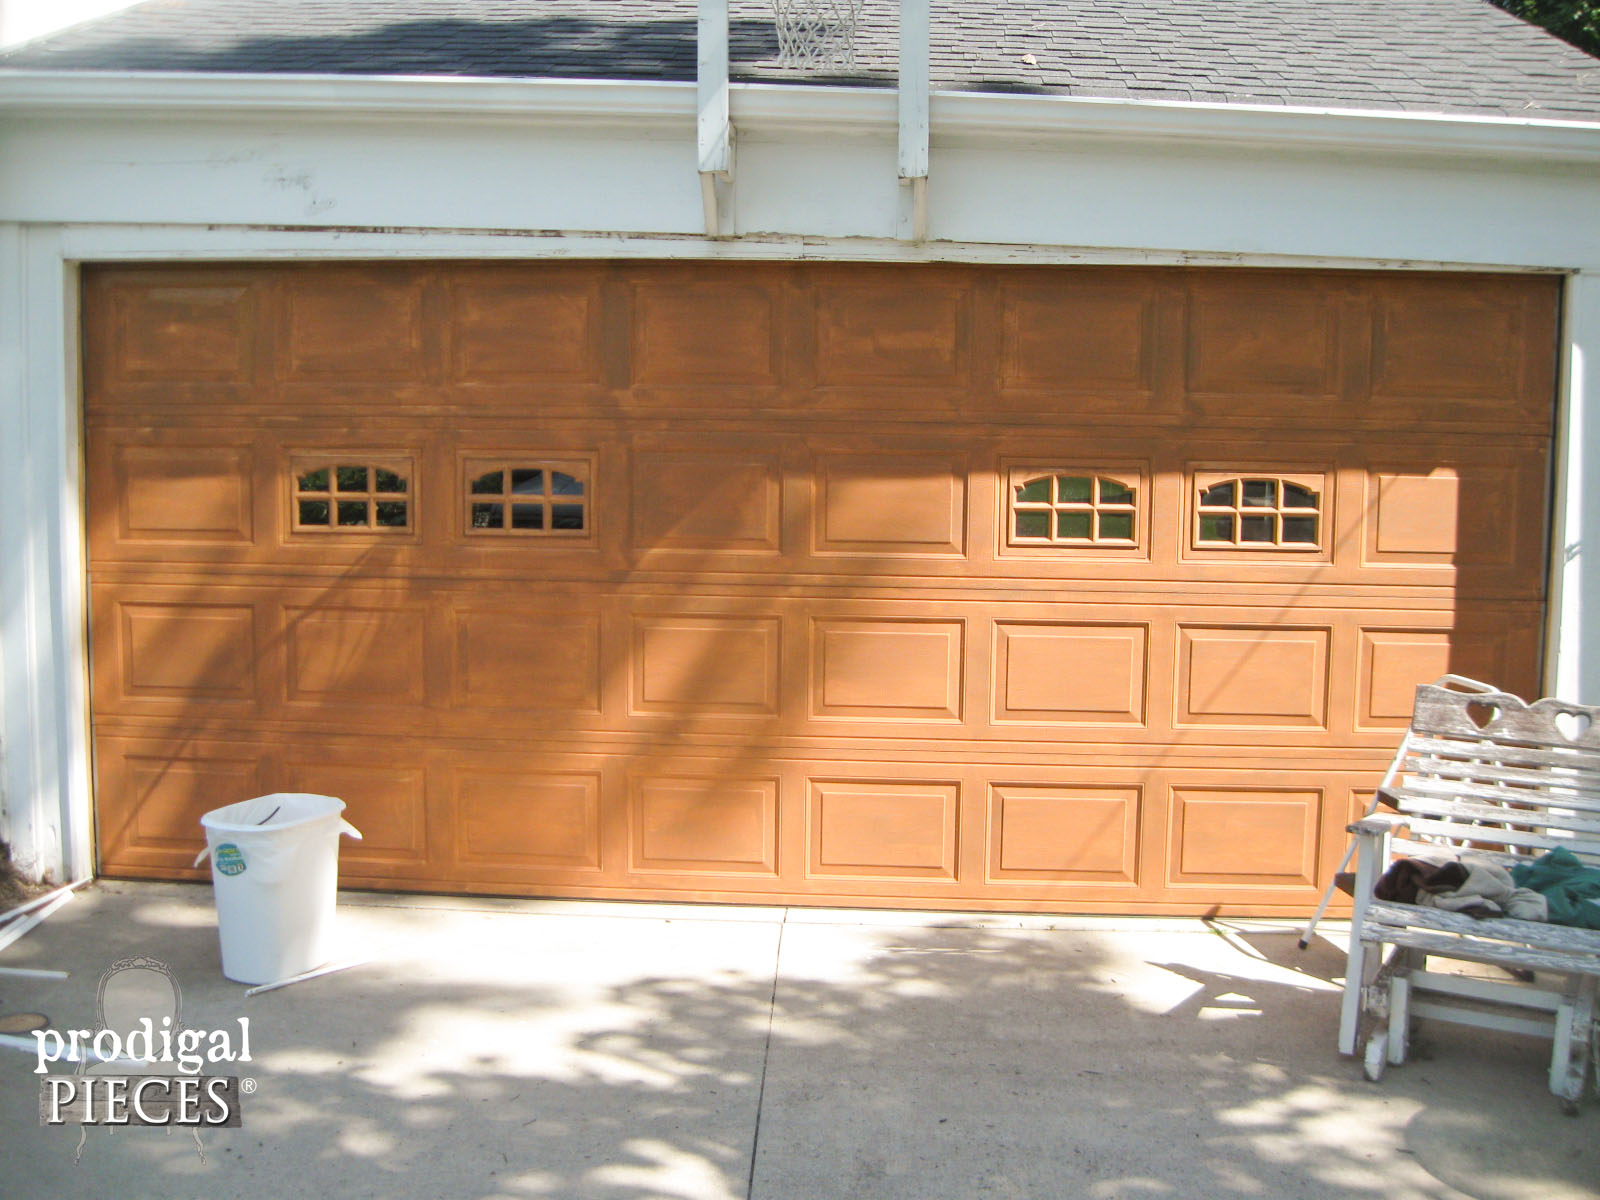 Faux wood painted garage doors - Garage First Paint Layer